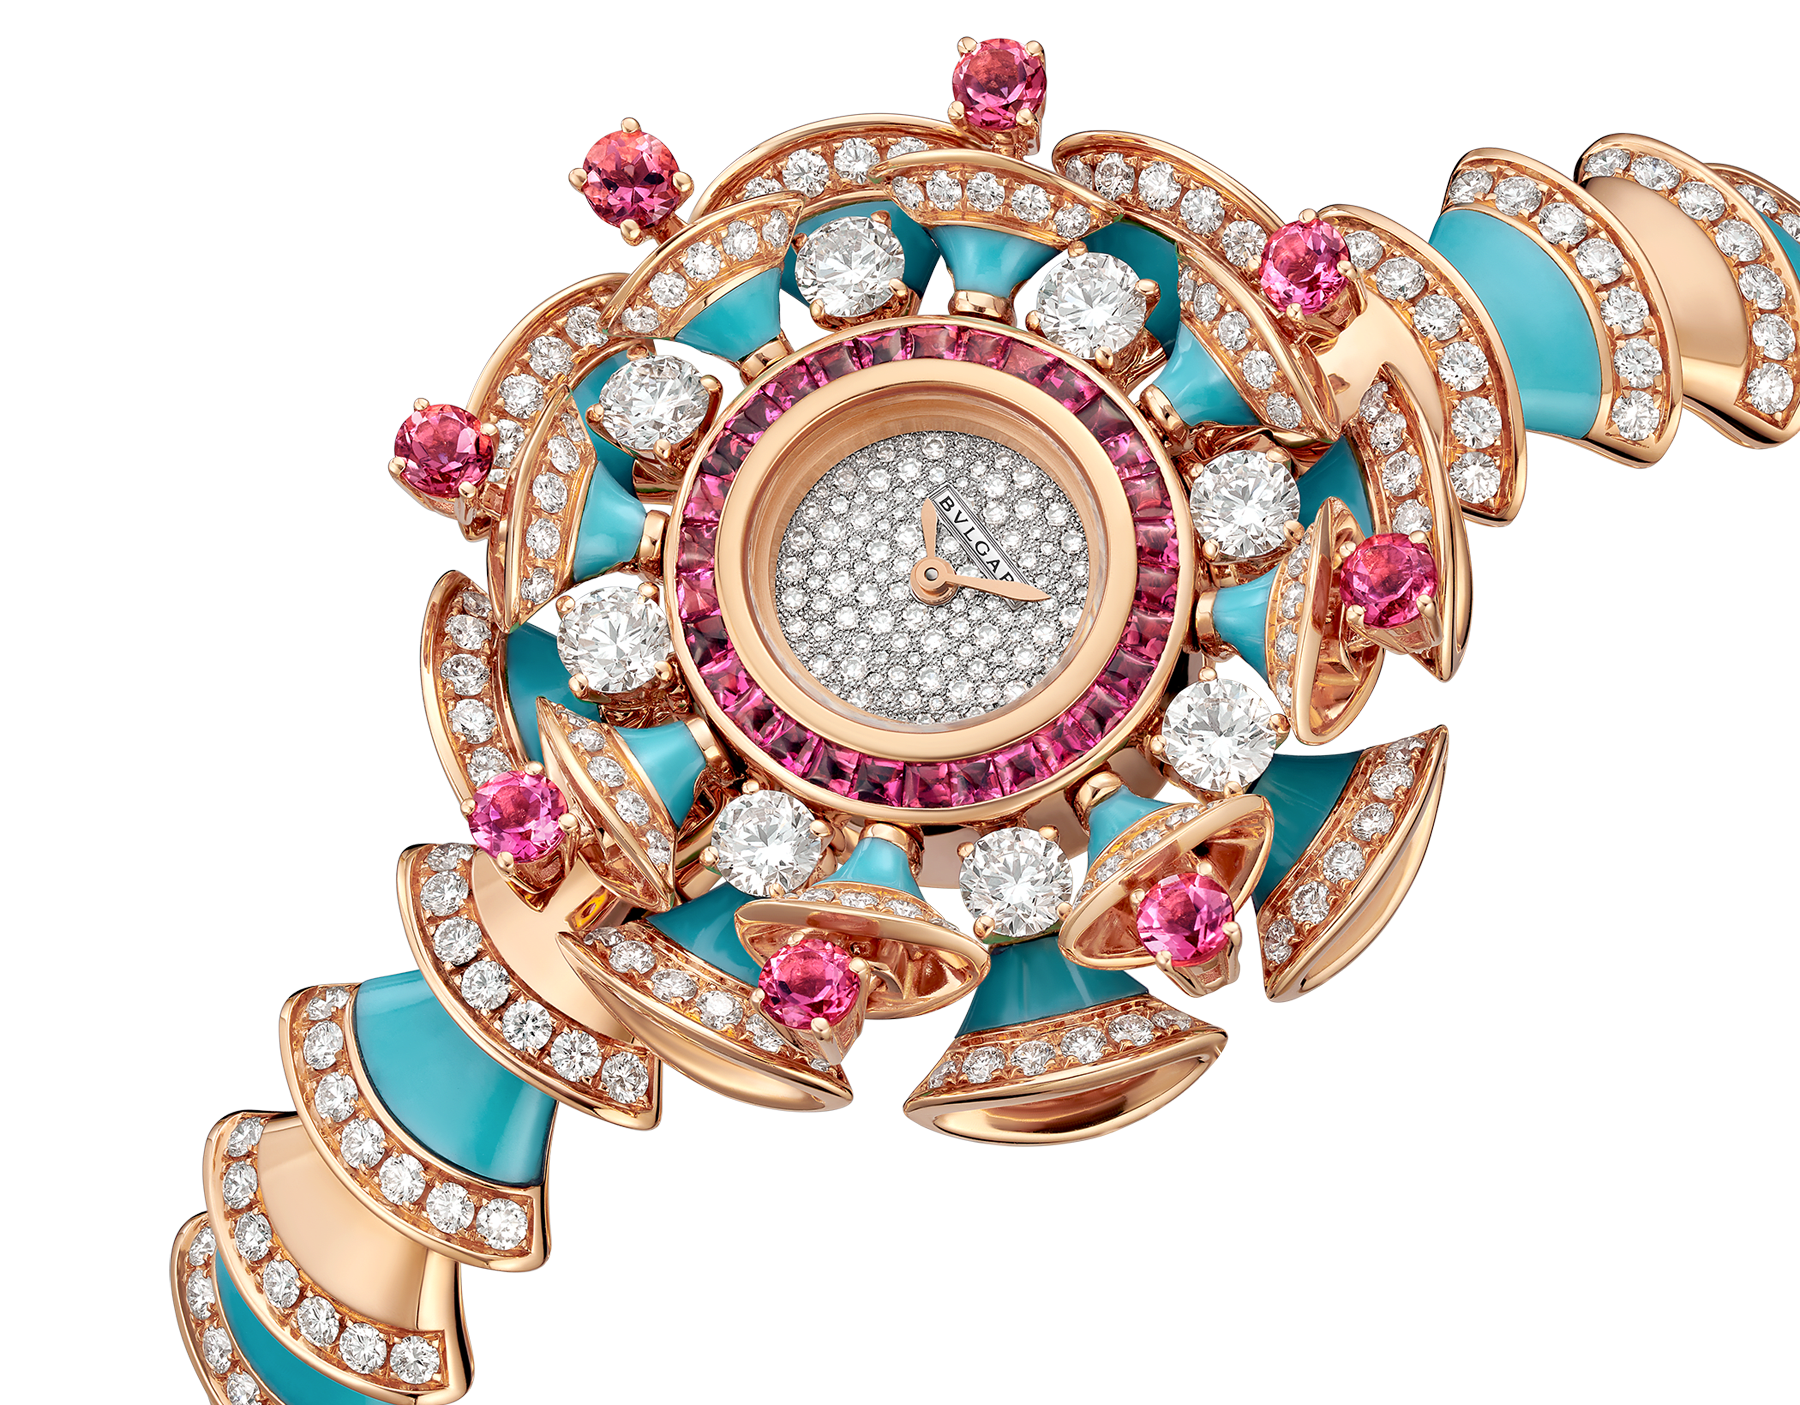 DIVAS' DREAM watch with 18 kt rose gold case set with brilliant-cut diamonds, pink tourmalines and turquoises, snow pavé dial and 18 kt rose gold bracelet set with brilliant-cut diamonds and turquoises 102079 image 2